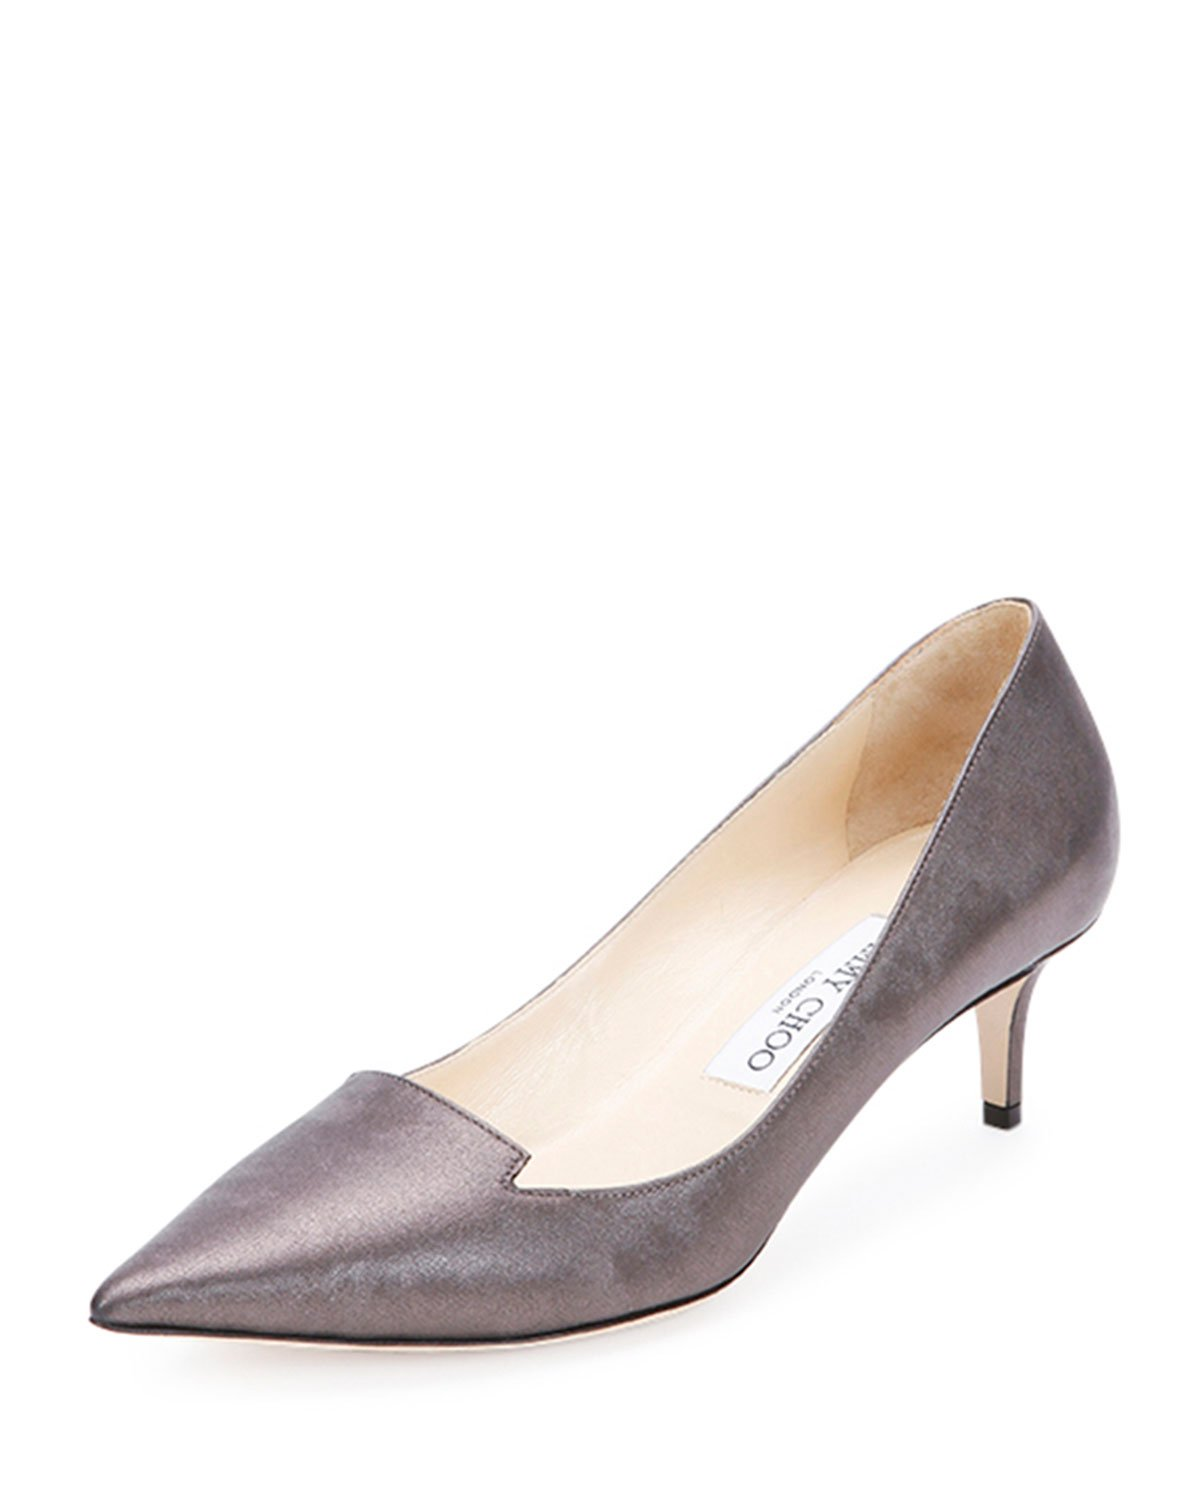 Jimmy choo Allure Kitten-Heel Pump in Metallic | Lyst